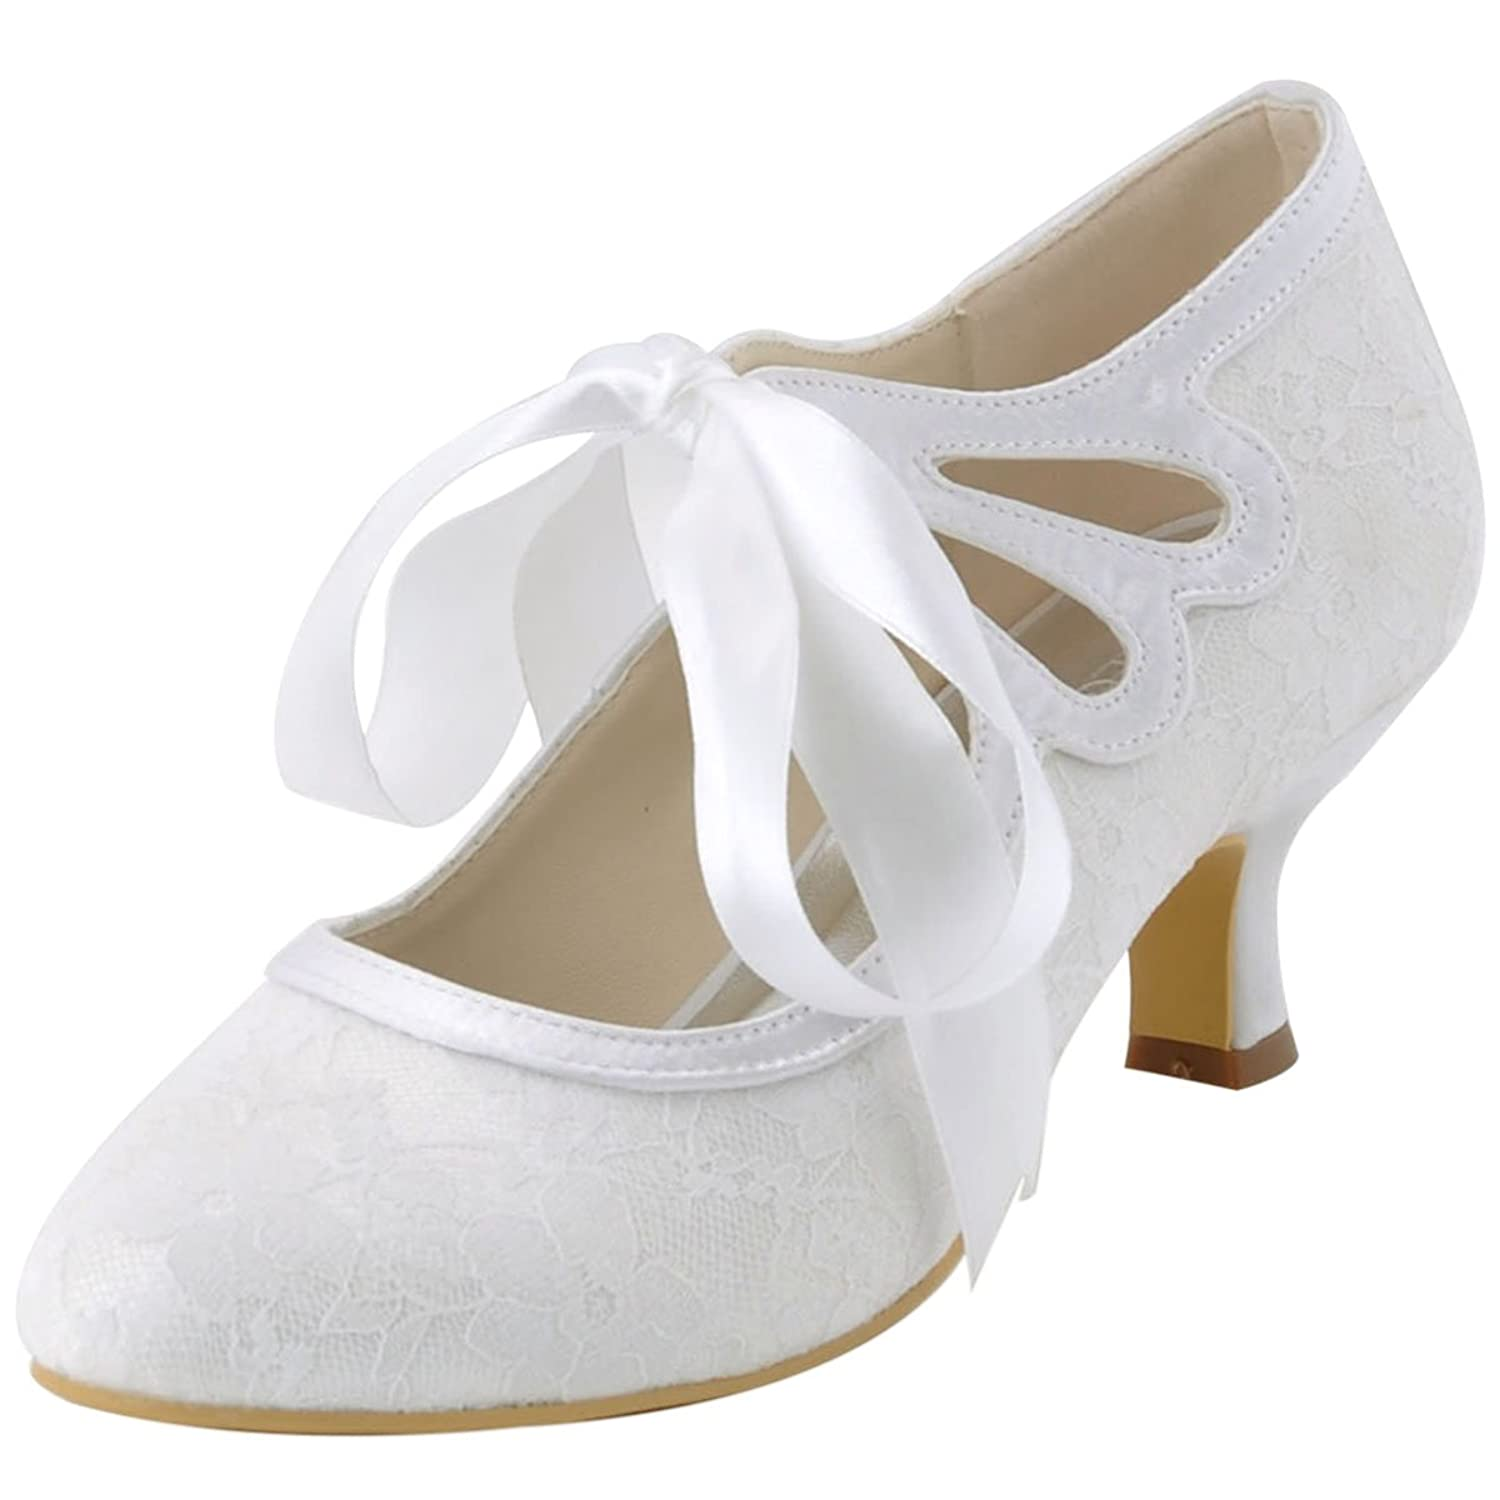 Vintage Heels, Retro Heels, Pumps, Shoes ElegantPark HC1521 Womens Mary Jane Closed Toe Low Heel Pumps Lace Wedding Dress Shoes $48.95 AT vintagedancer.com